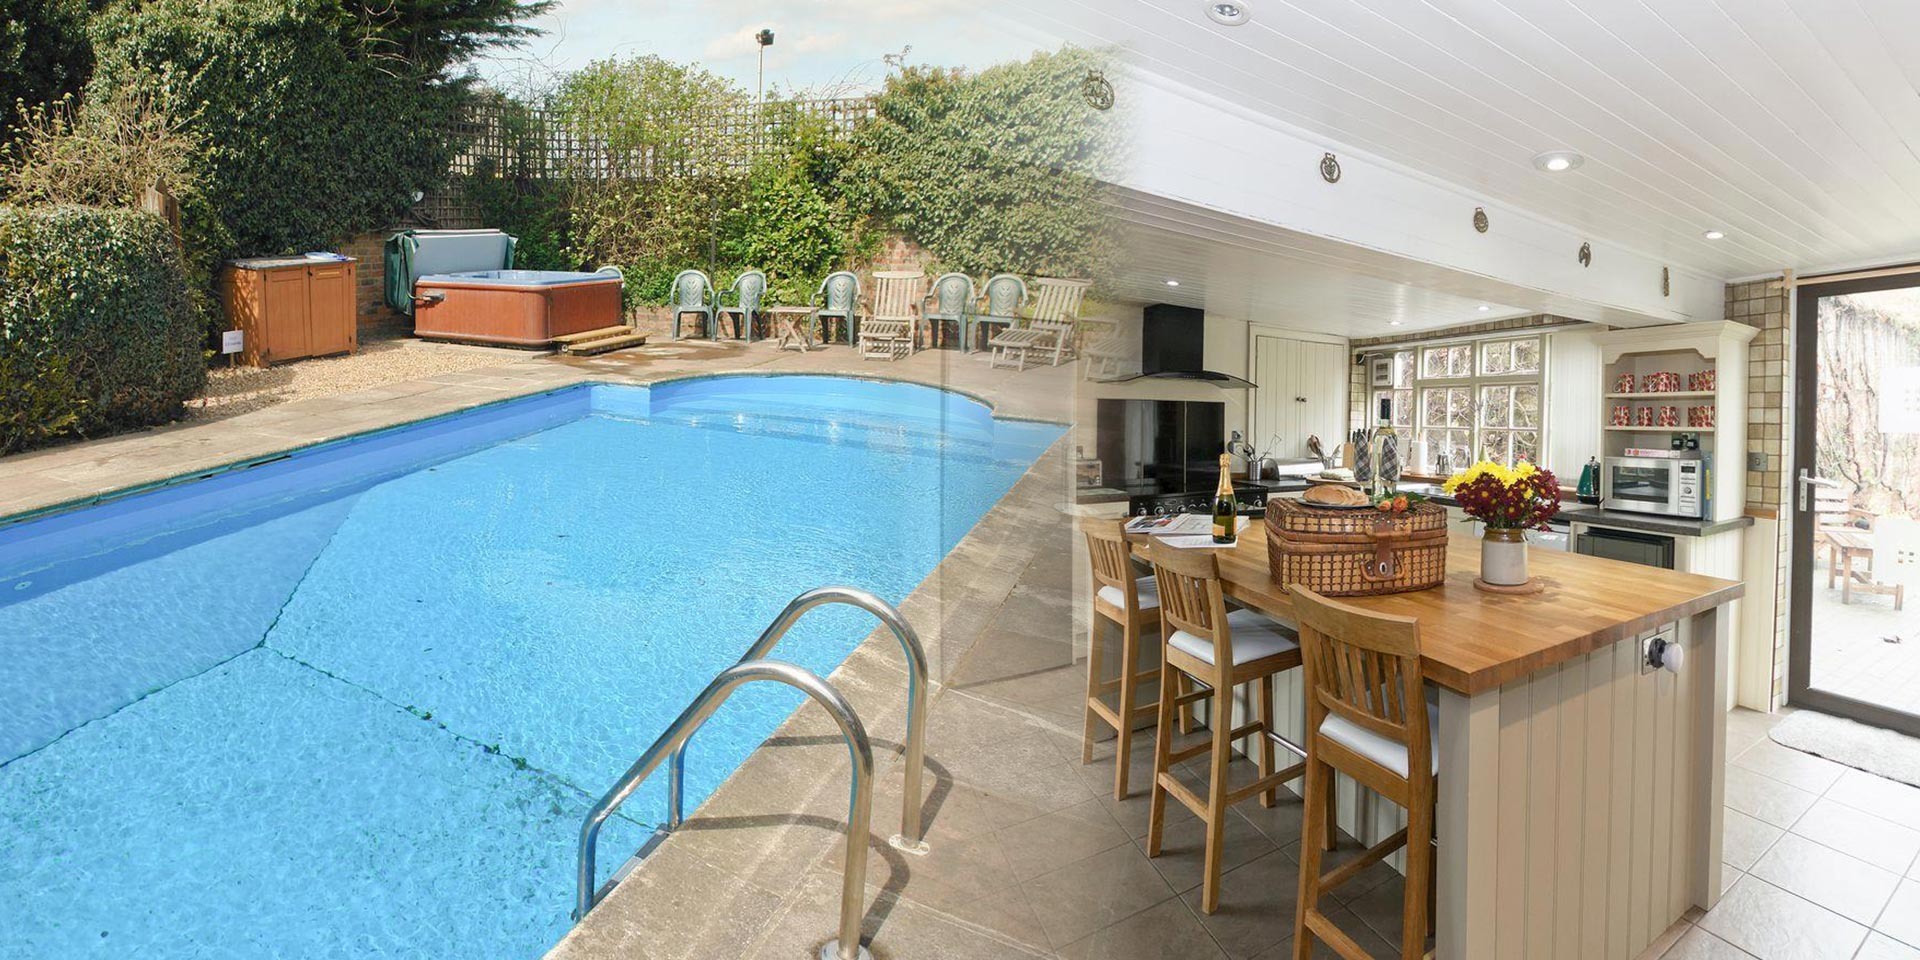 York pool party house celebration cottages - Hen party houses with swimming pool ...